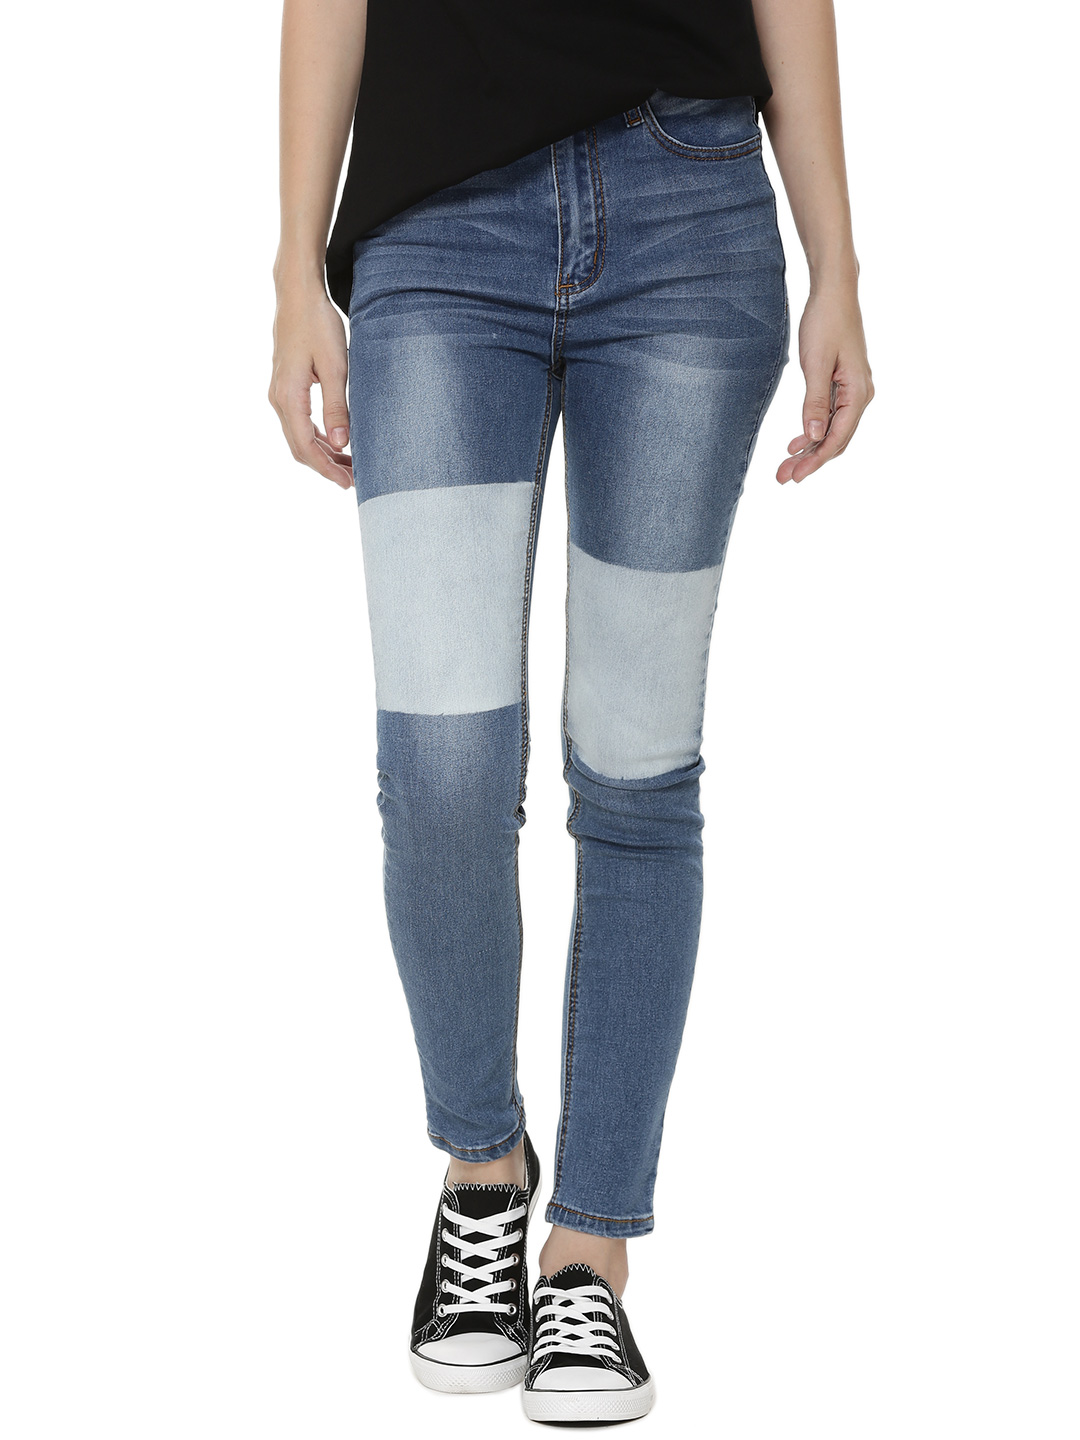 Momokrom Blue Faded Patch Skinny Jeans 1